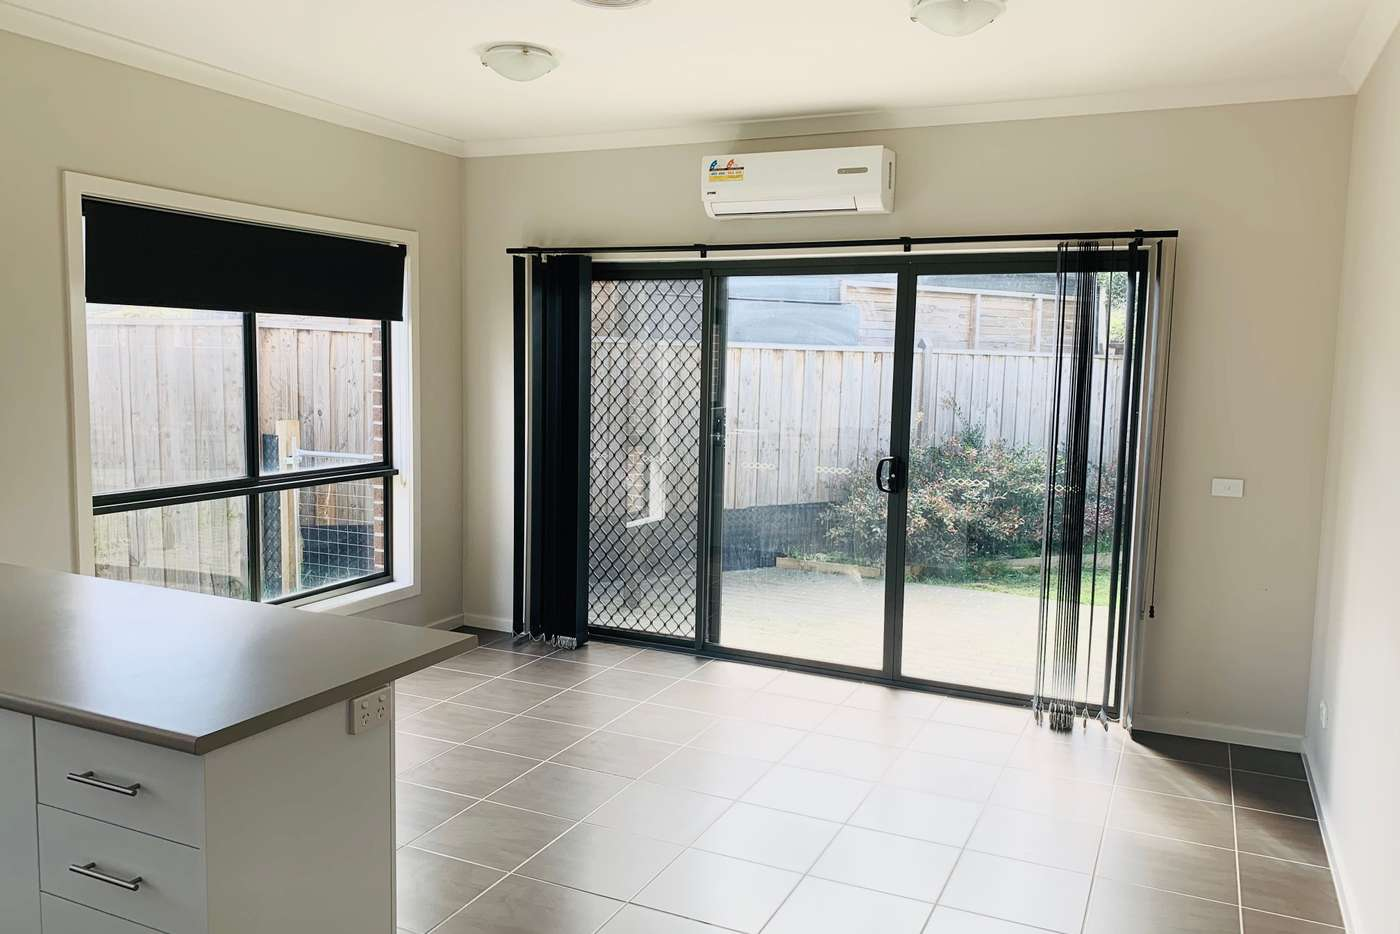 Sixth view of Homely house listing, 1 Burssi Circuit, Doreen VIC 3754